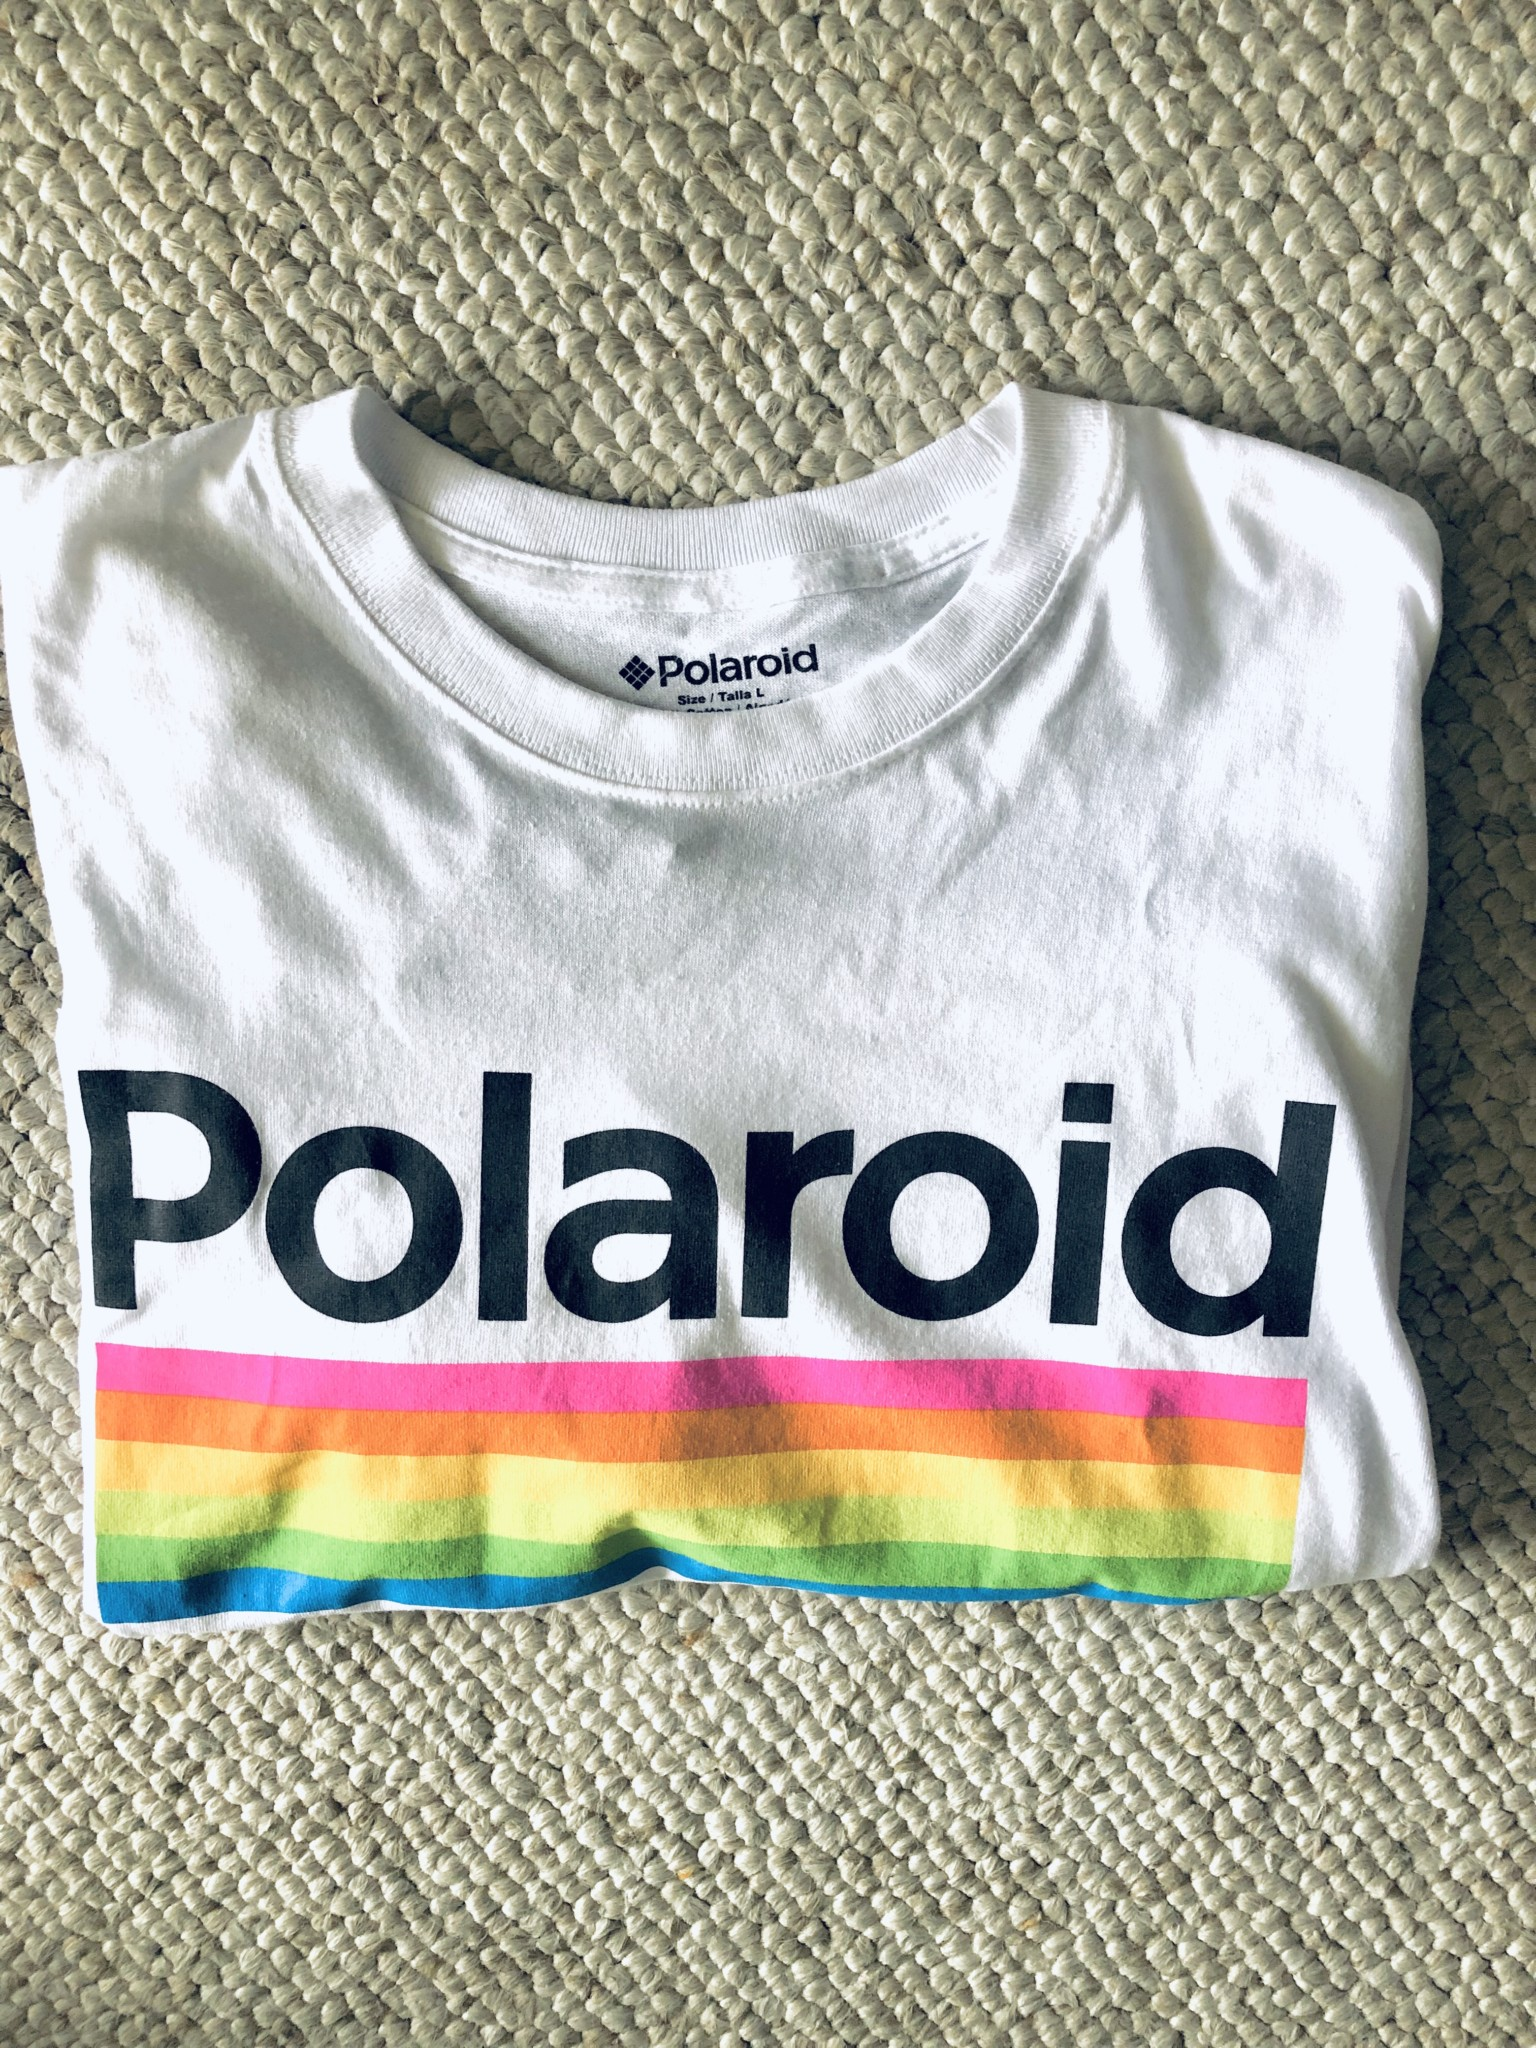 T-shirt Polaroid en liquidation à 3,99$